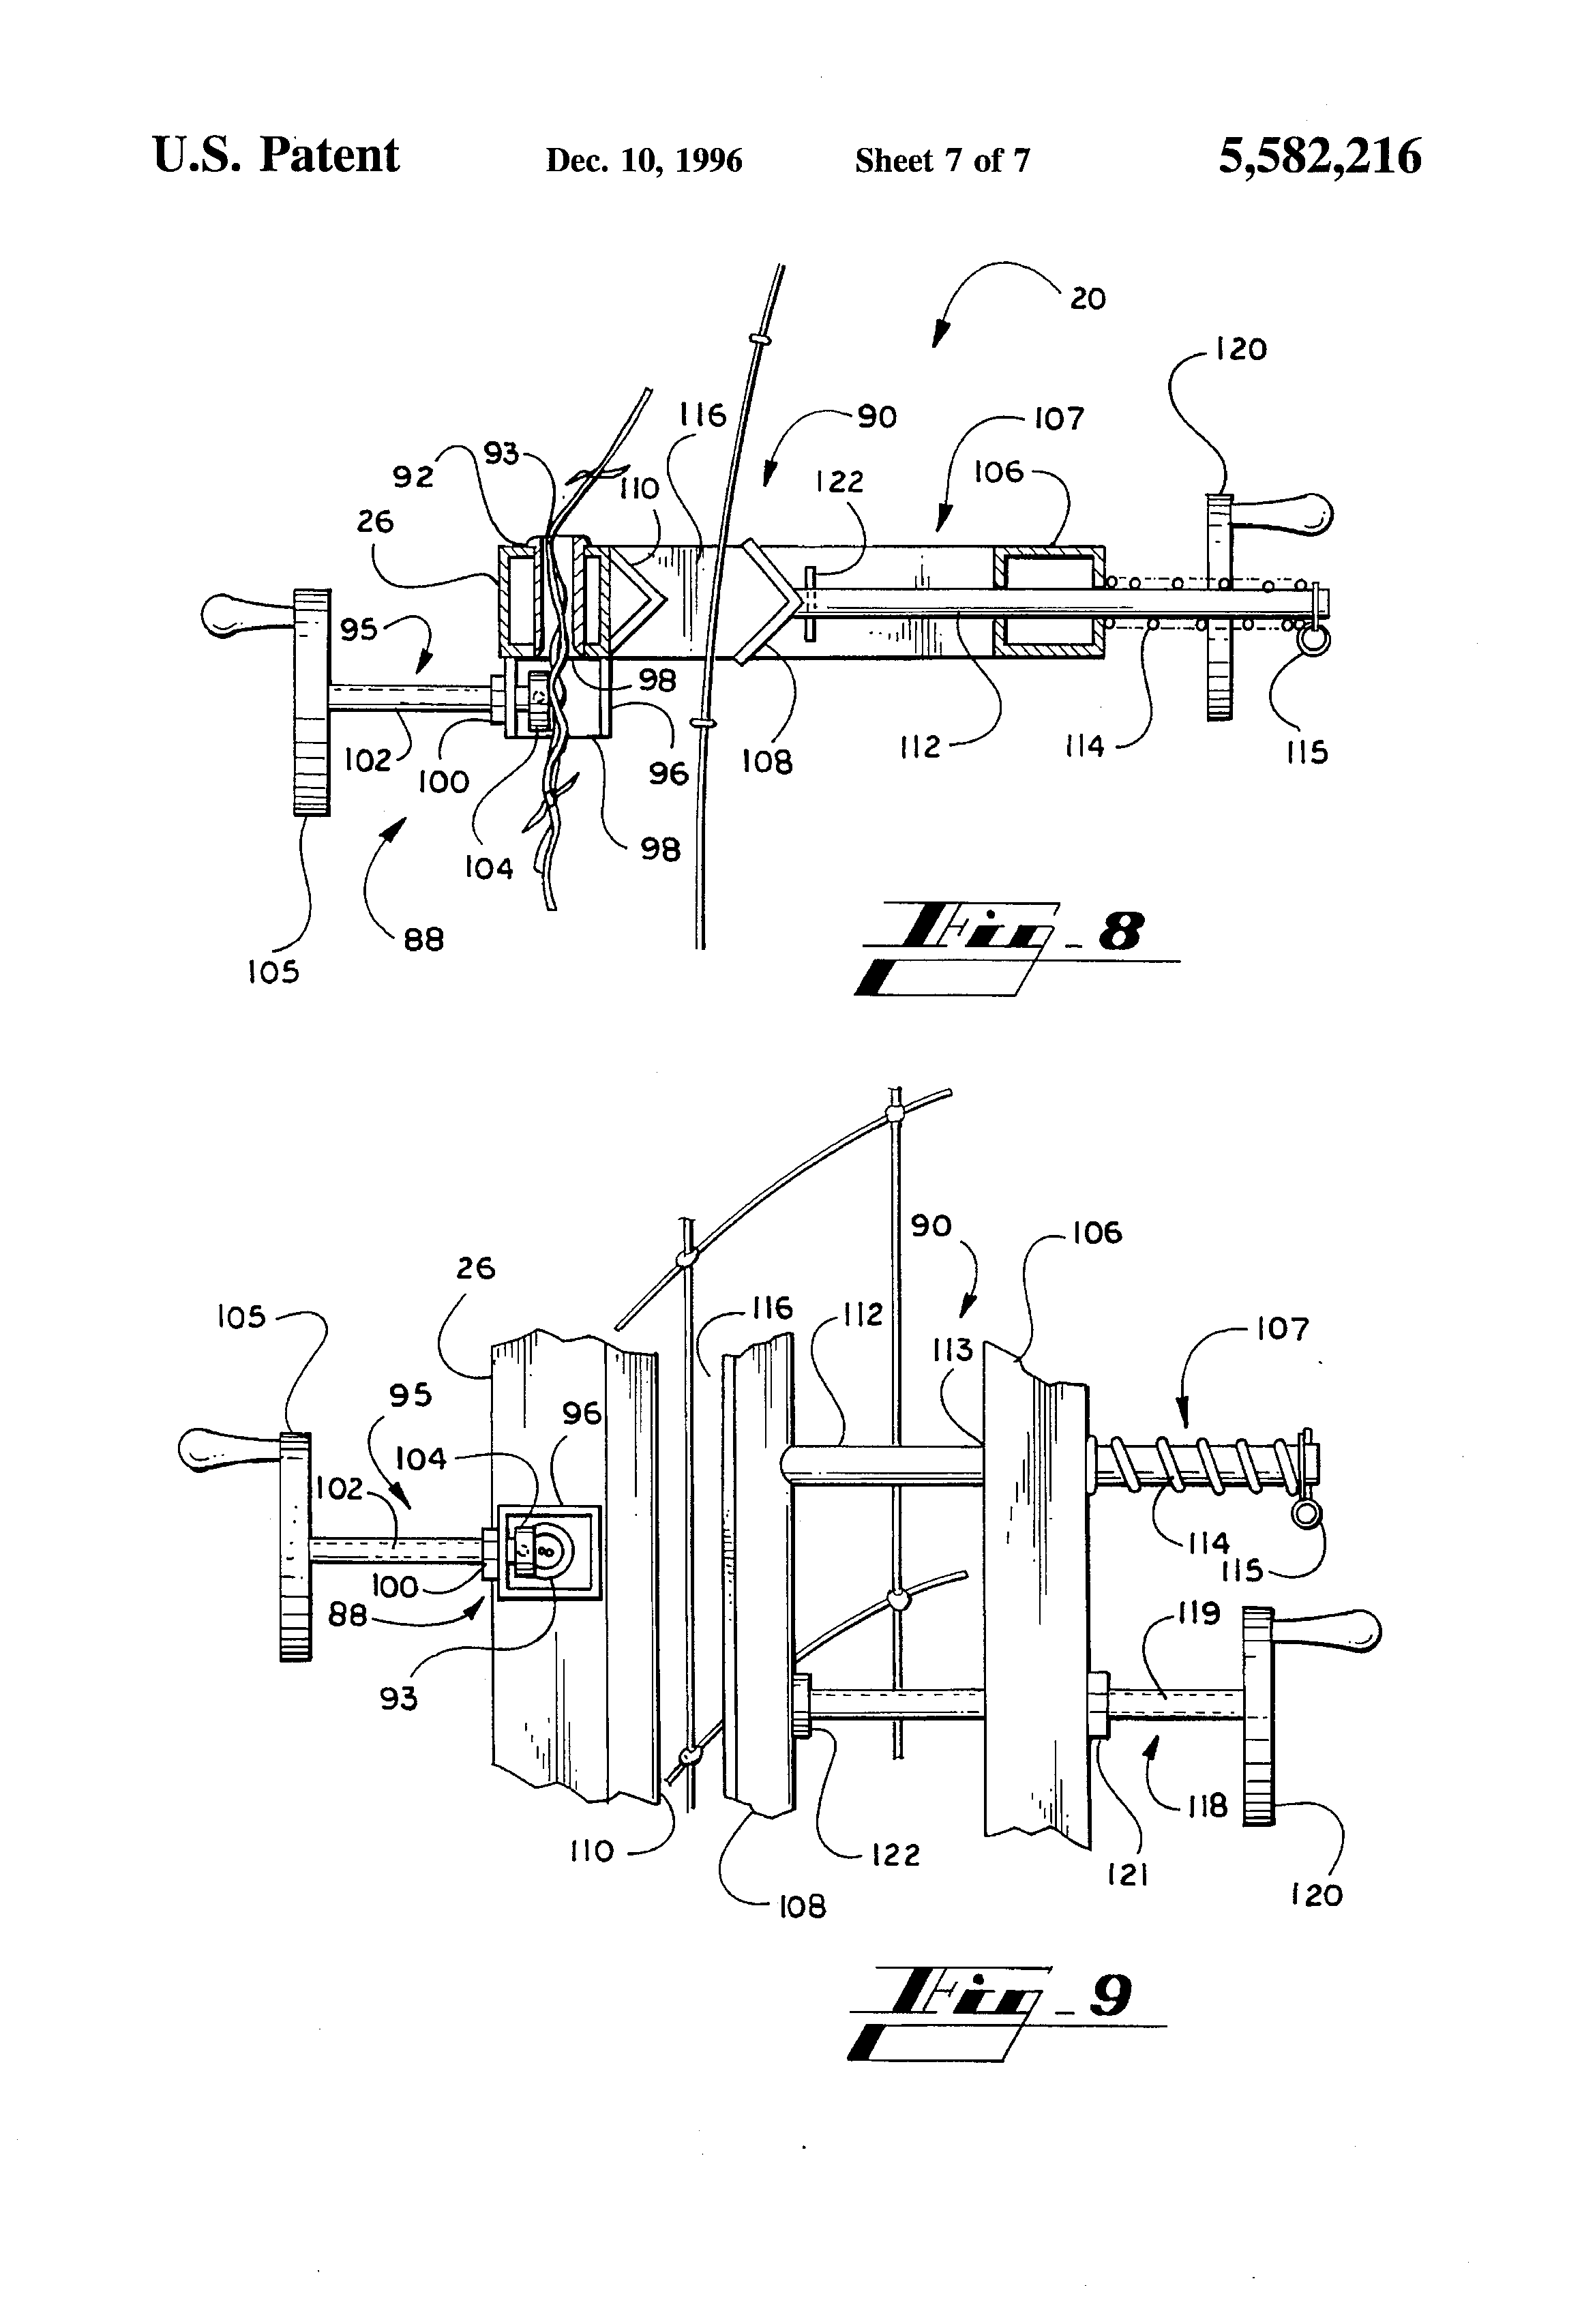 Apparatus And Method For Installing Cable : Patente us apparatus and method for installing